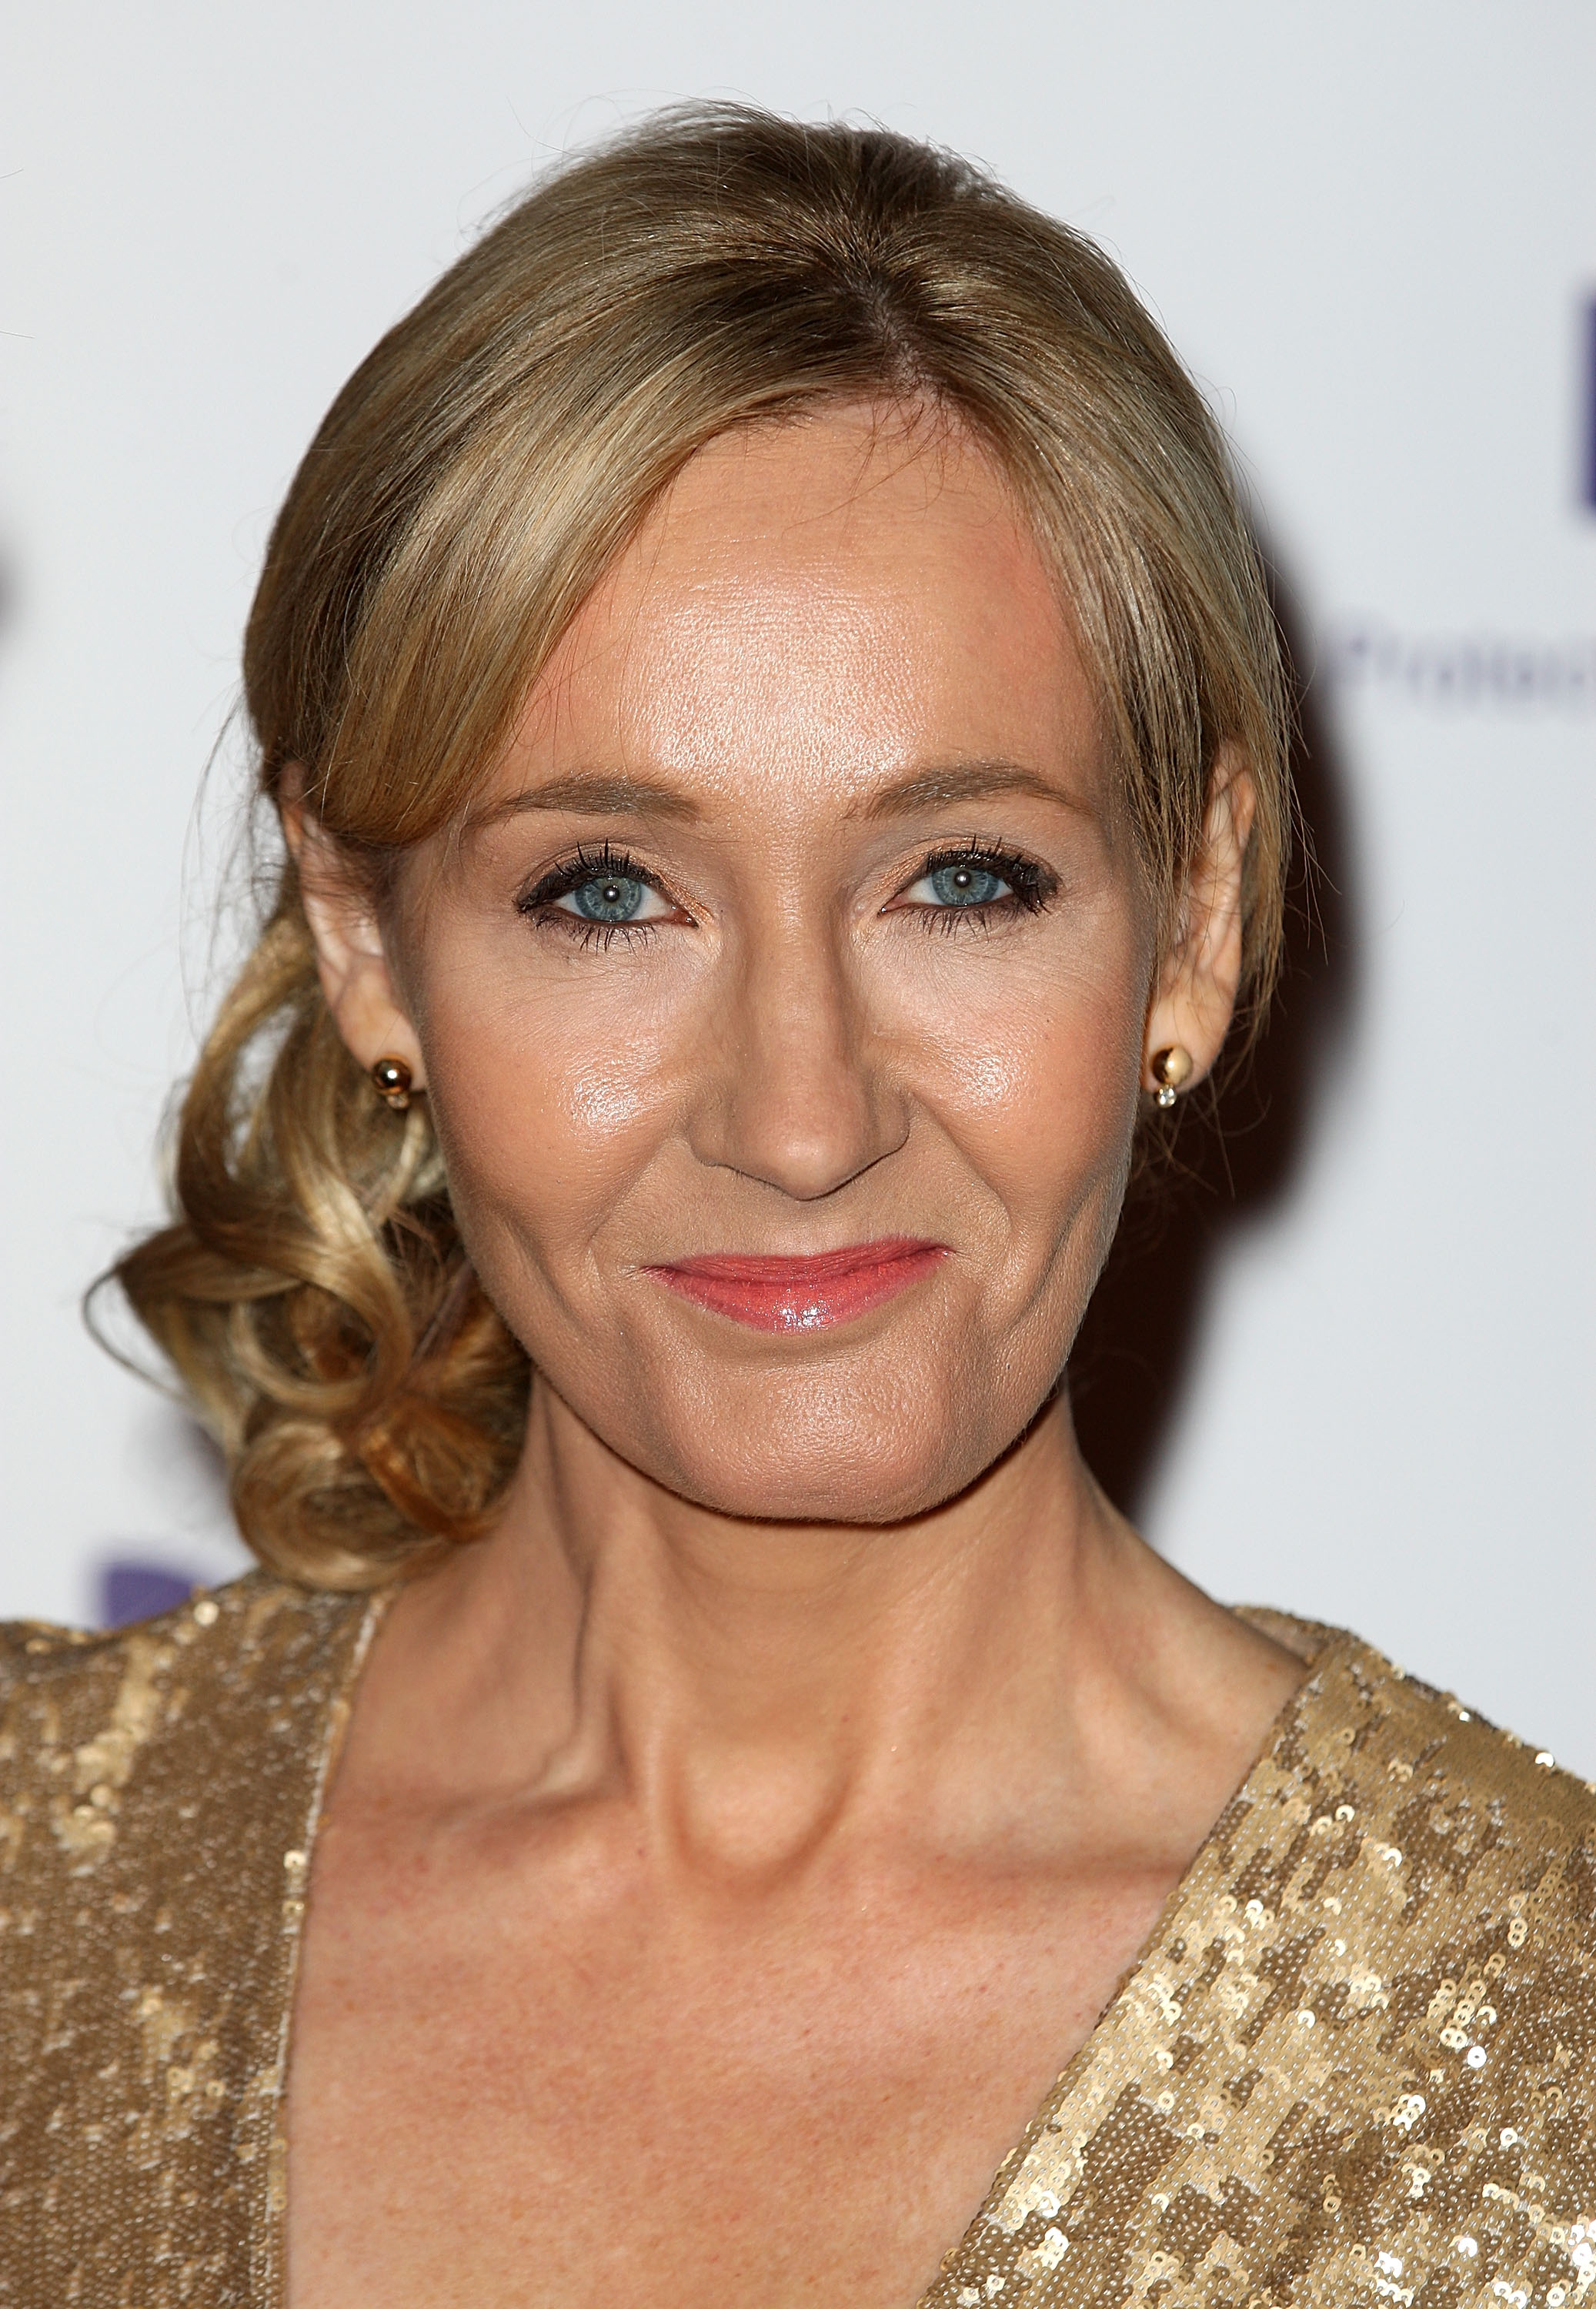 J.K. Rowling at a charity evening to raise funds for 'Lumos' in London on Nov. 9, 2013.